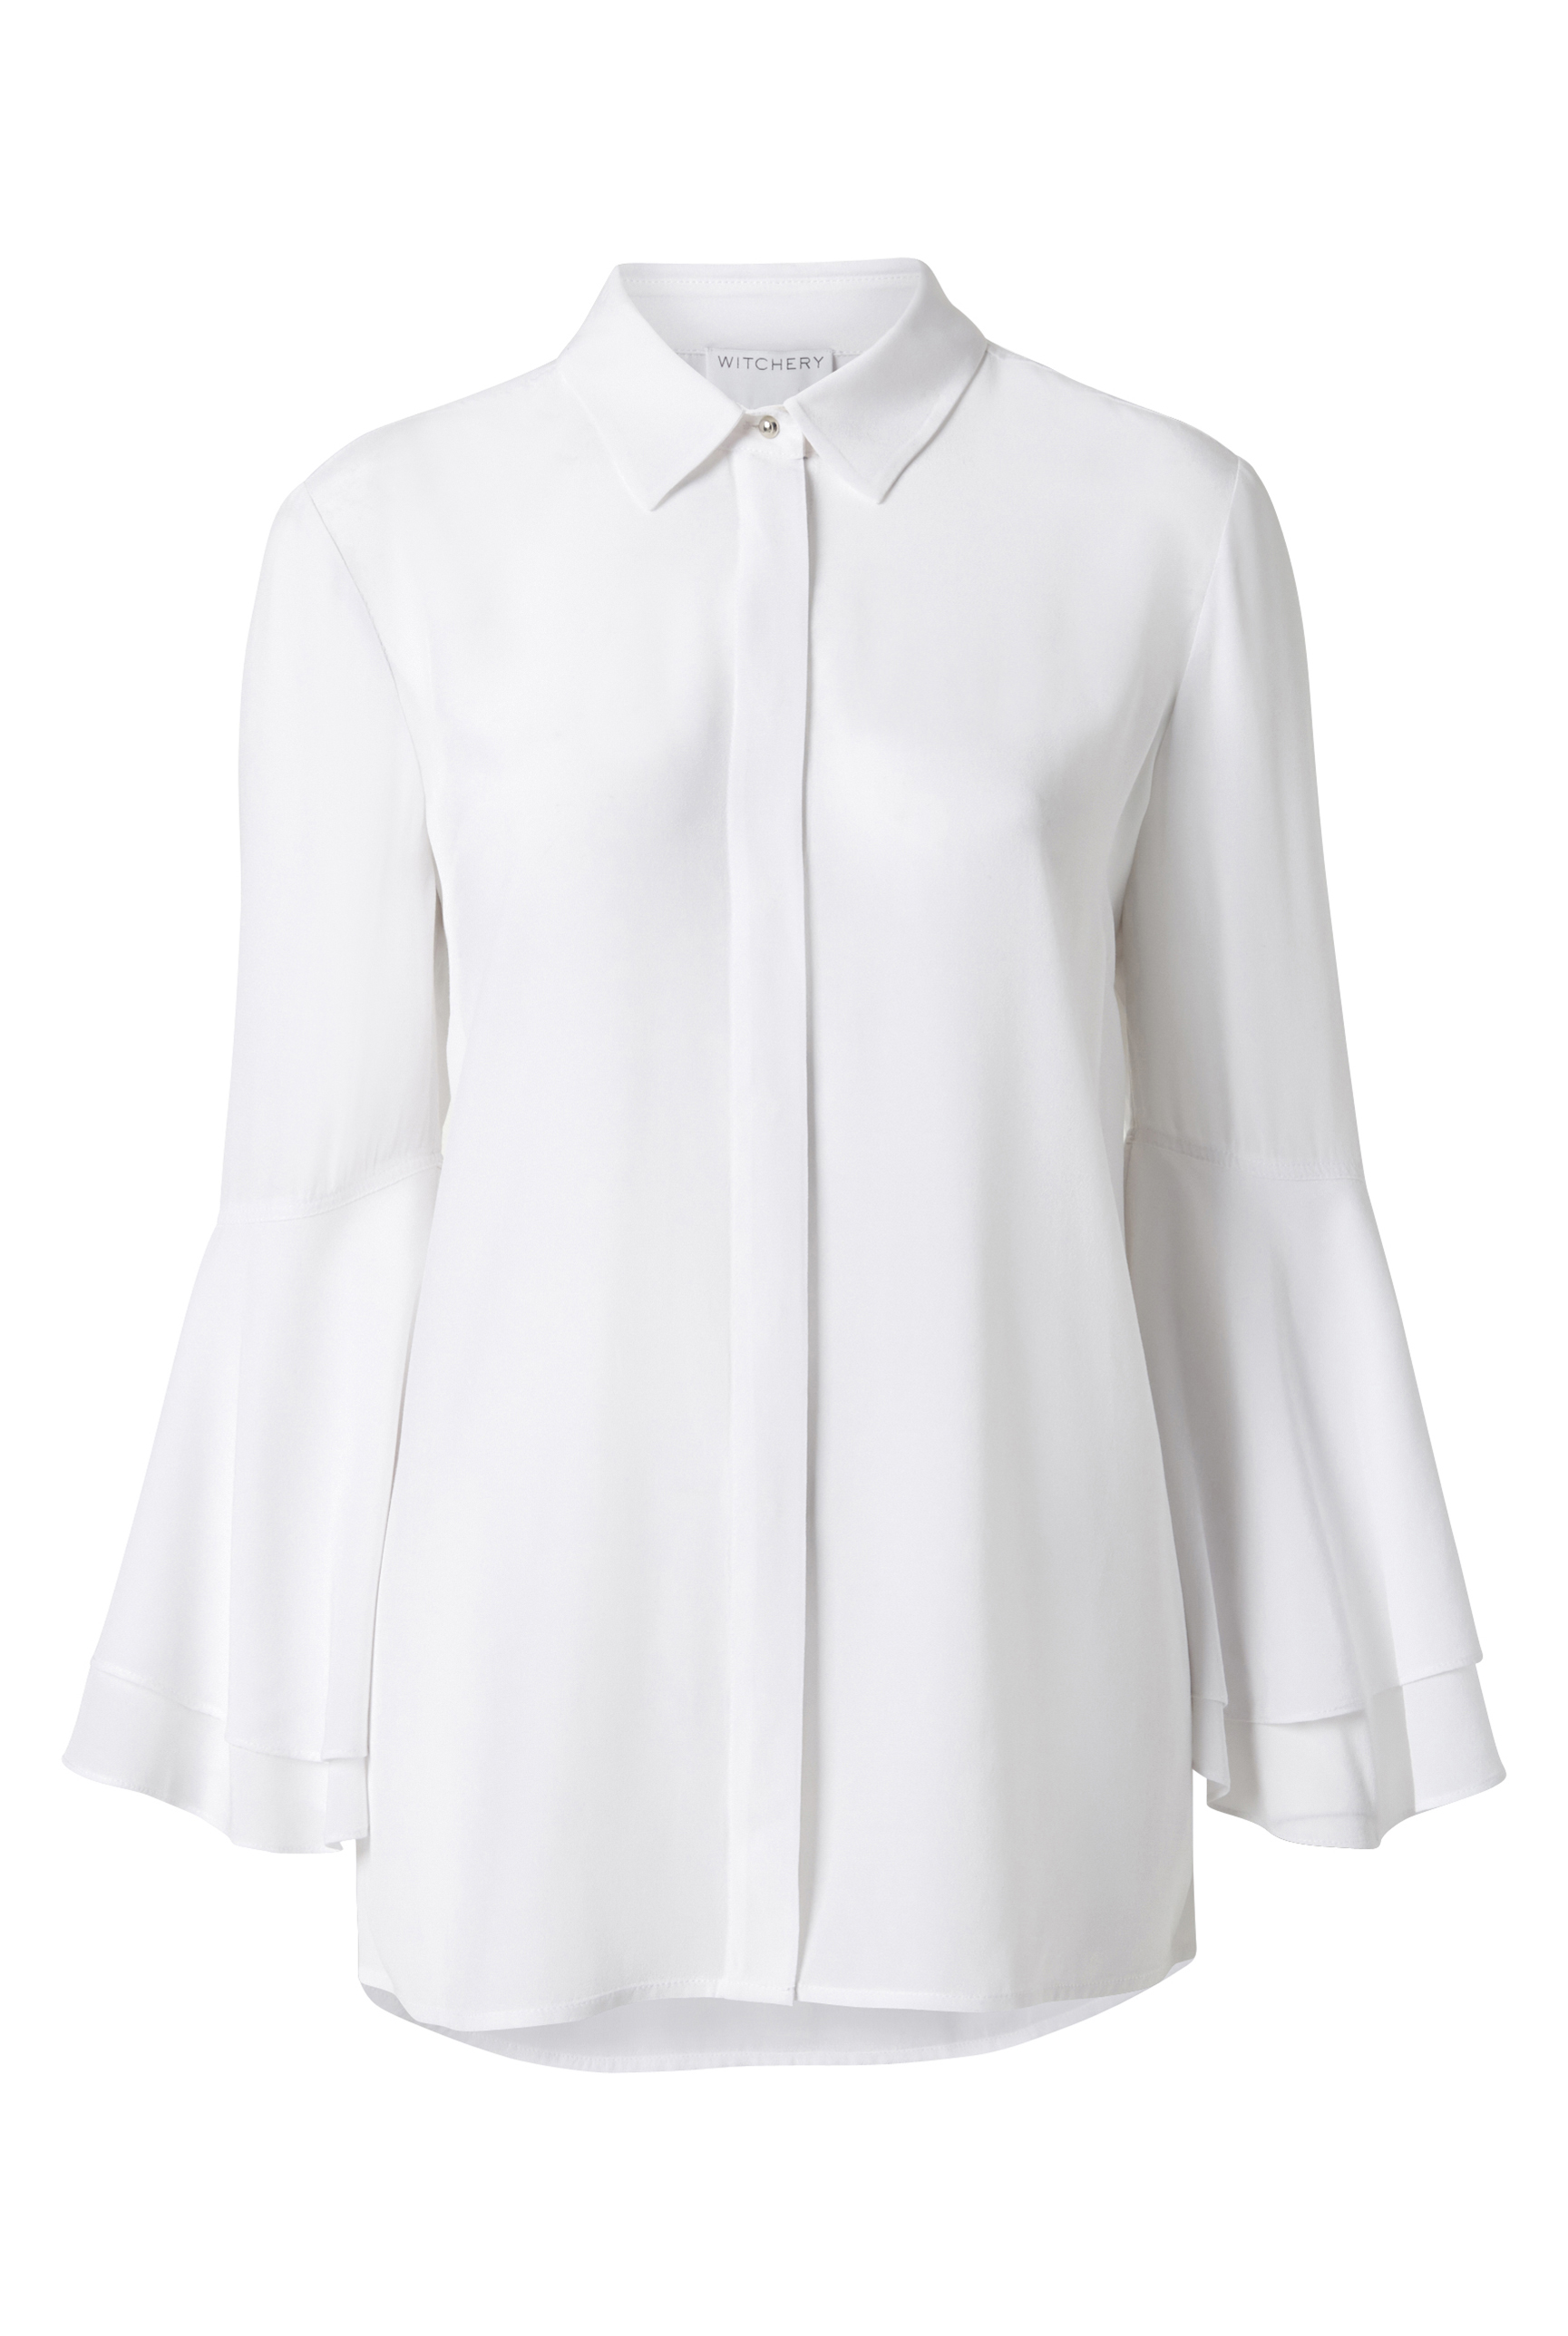 60210141_Witchery OCRF Flutter Sleeve Shirt, RRP$139.90